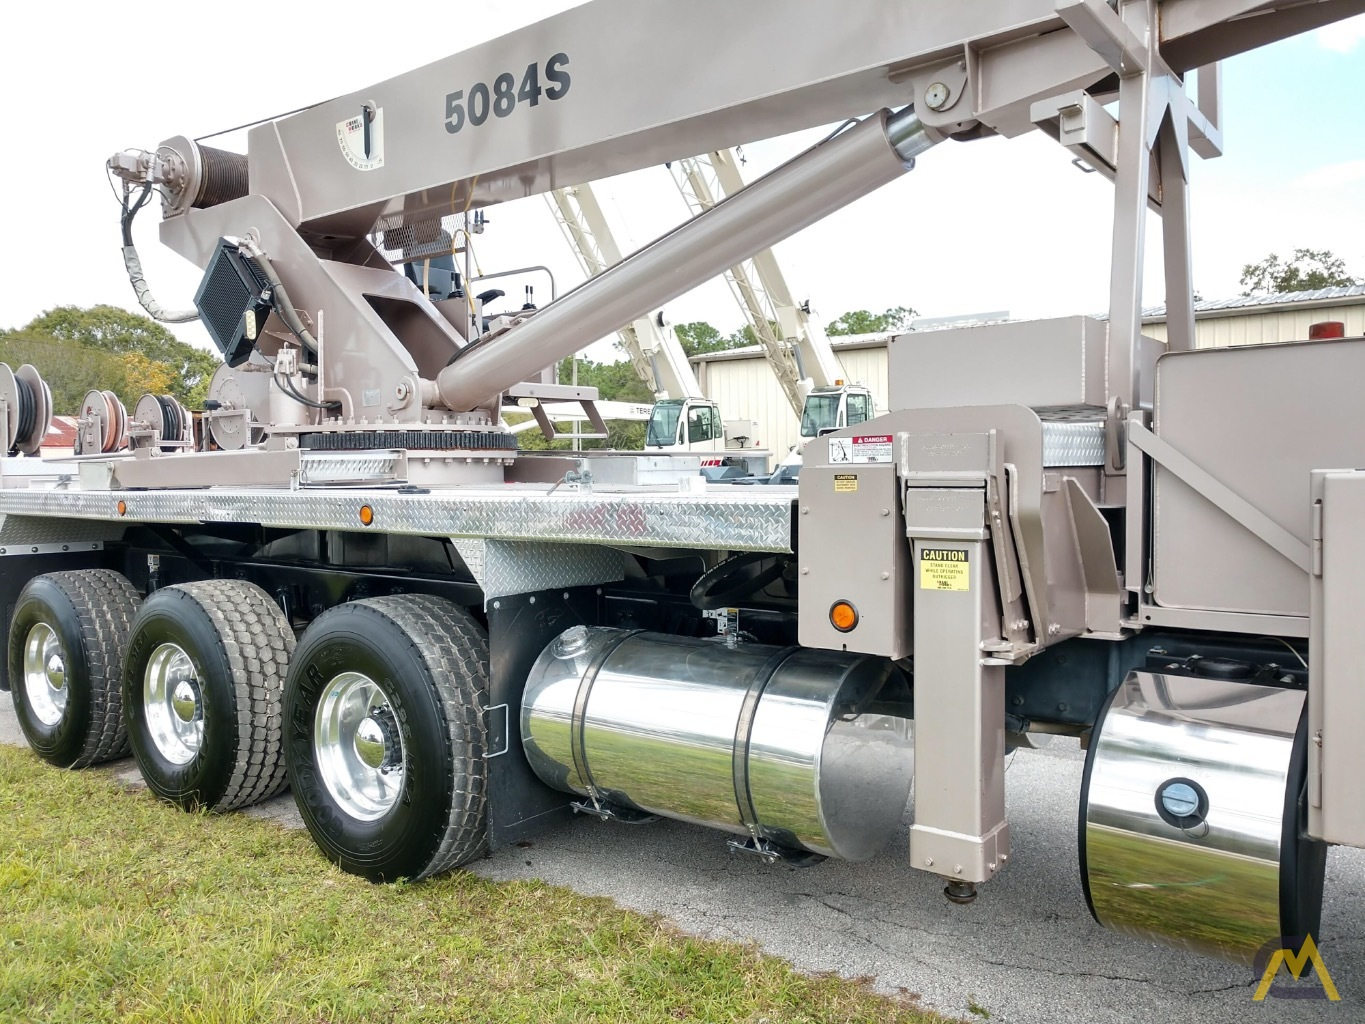 Manitex 5084S 50-ton Boom Truck Crane with LOW HOURS!! 8